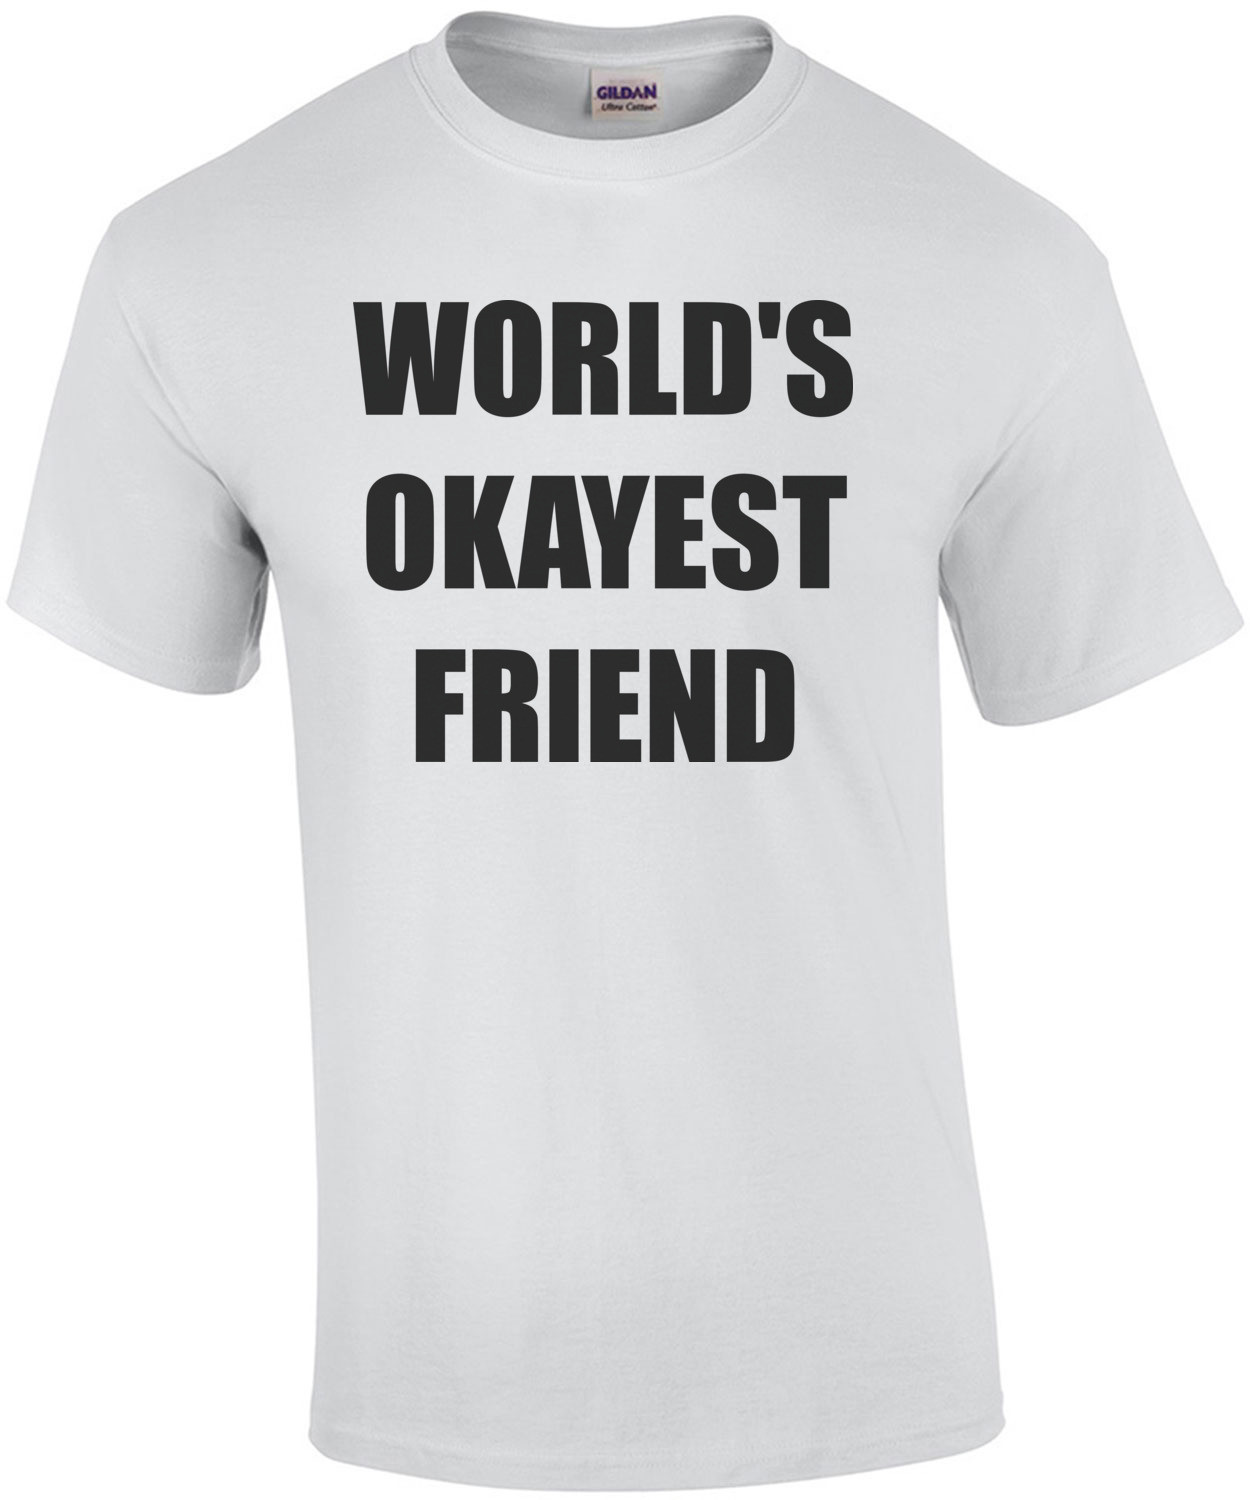 WORLD'S OKAYEST FRIEND Shirt